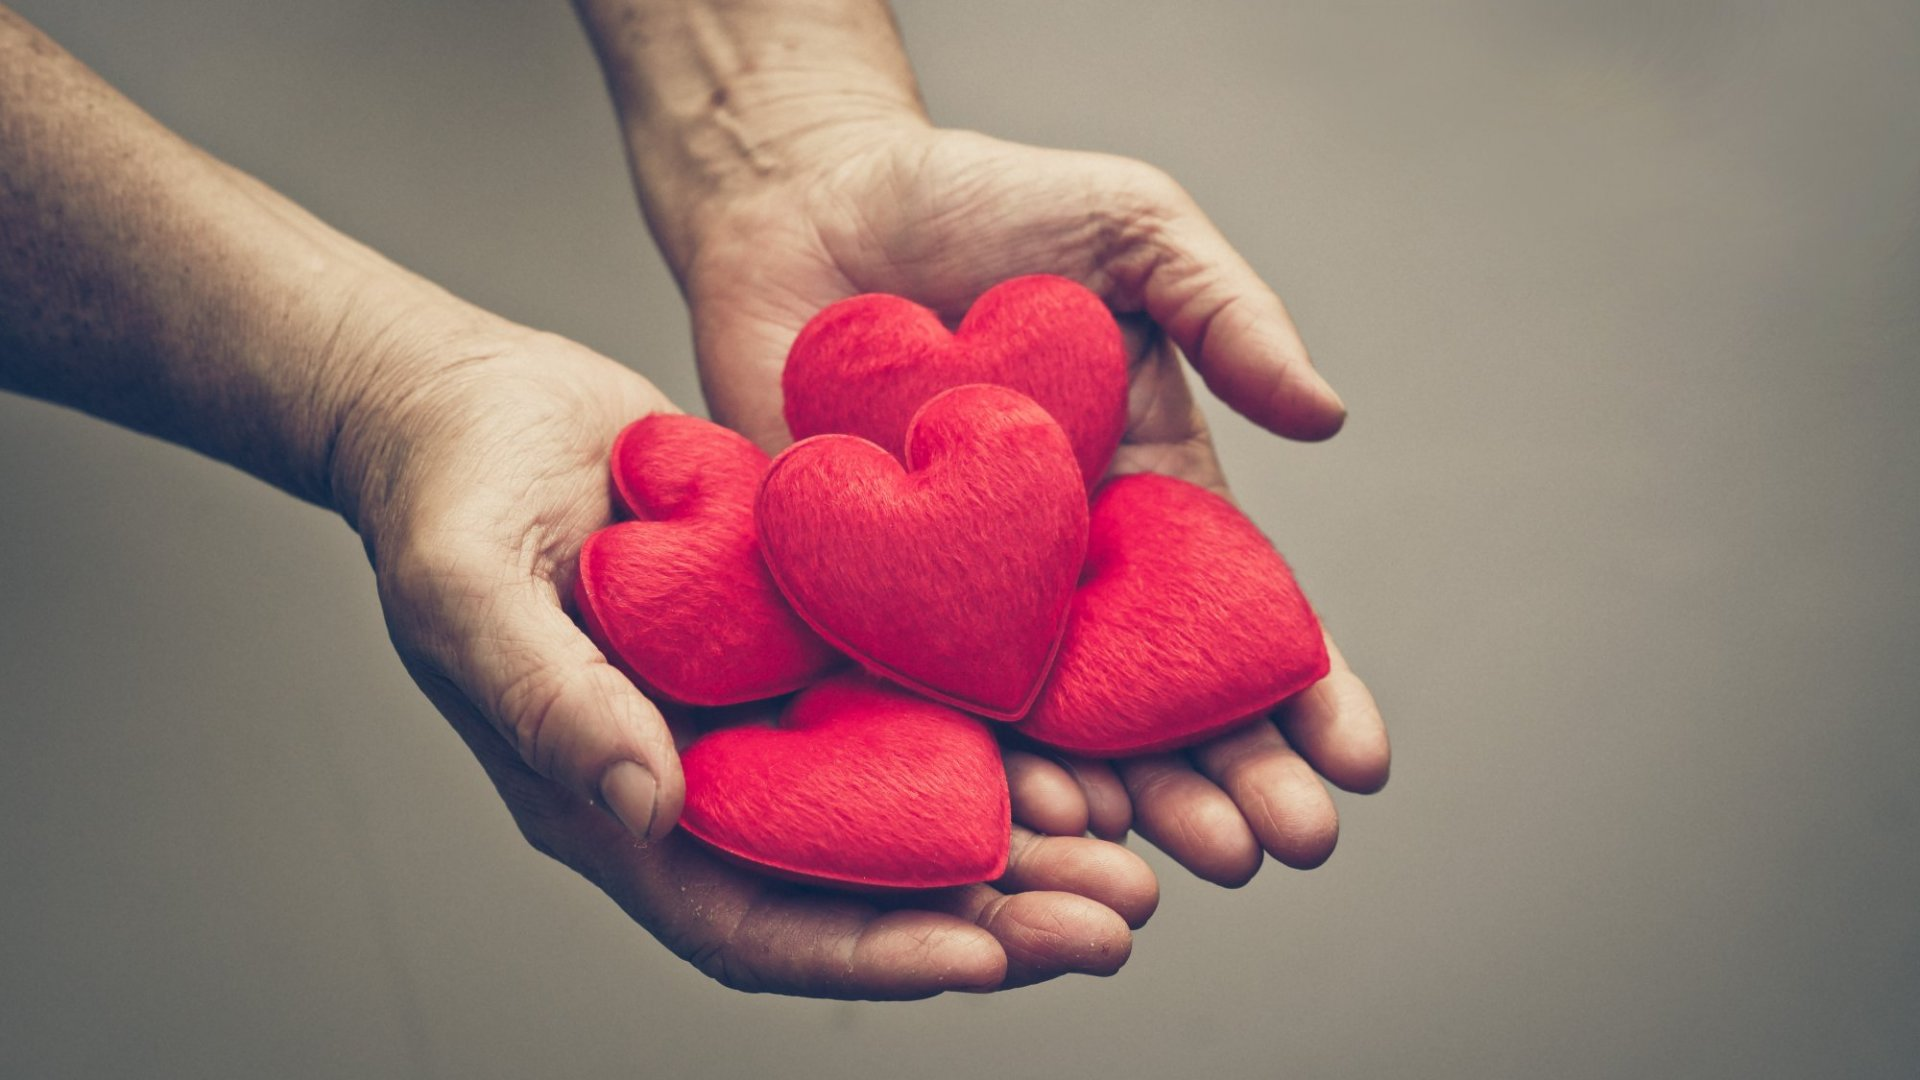 Science Reveals 11 Reasons Compassion at Work Matters (Just In Time for World Kindness Day)